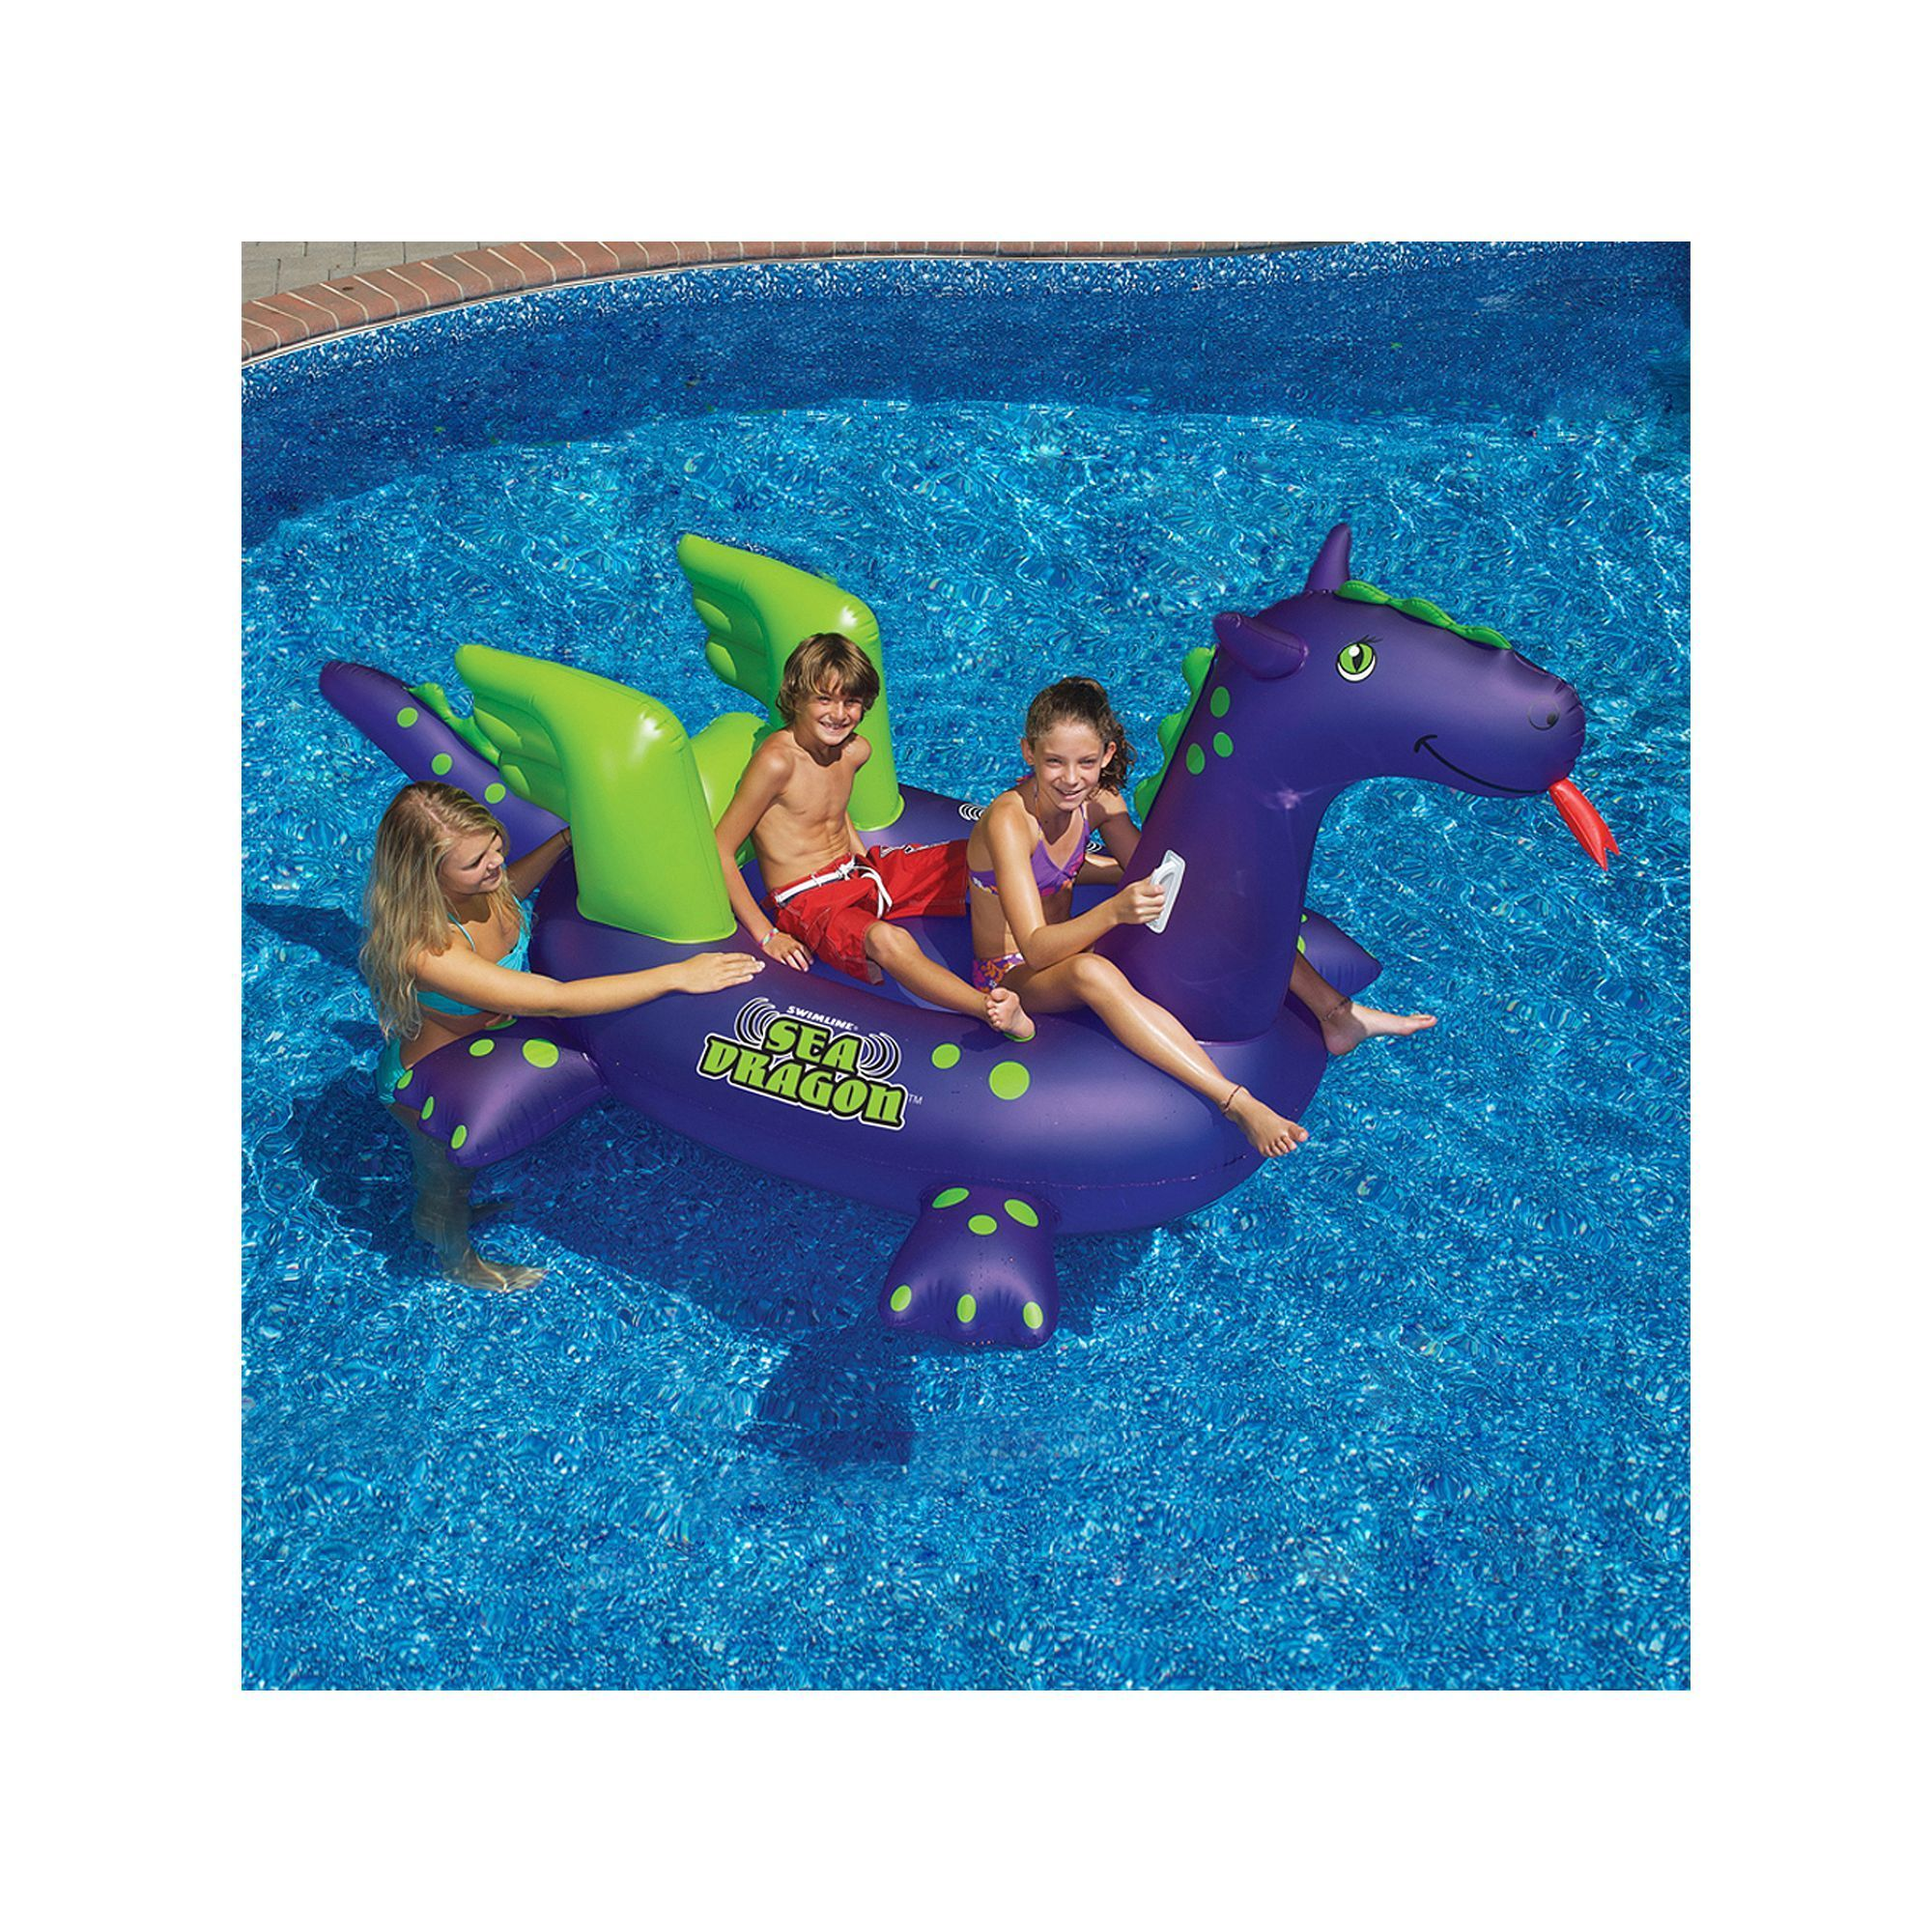 Swimline Giant Sea Dragon 9 ft Inflatable Ride Pool Toy